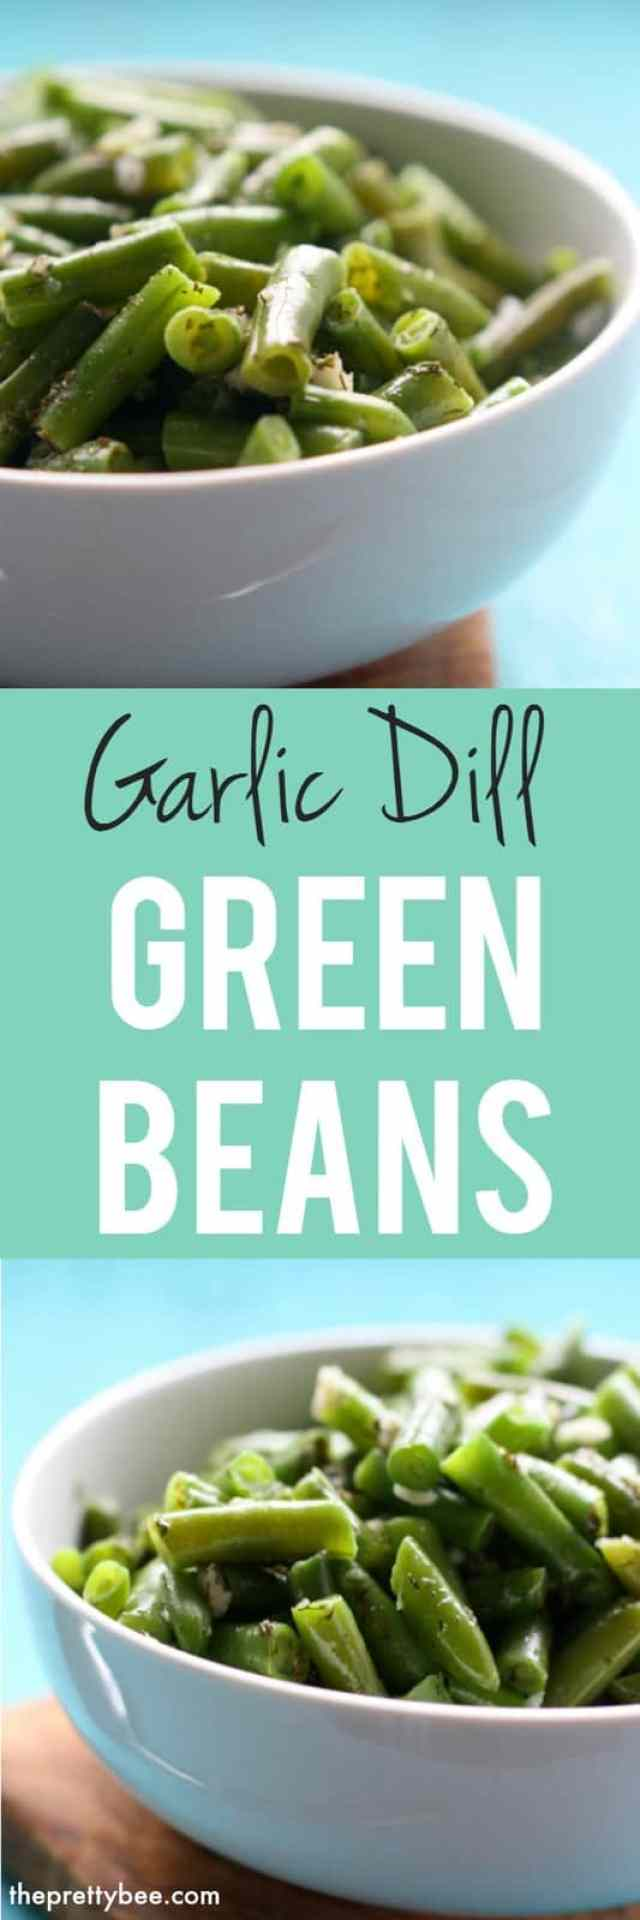 Garlic and dill make these green beans extra flavorful. Fresh or frozen green beans work well in this recipe.